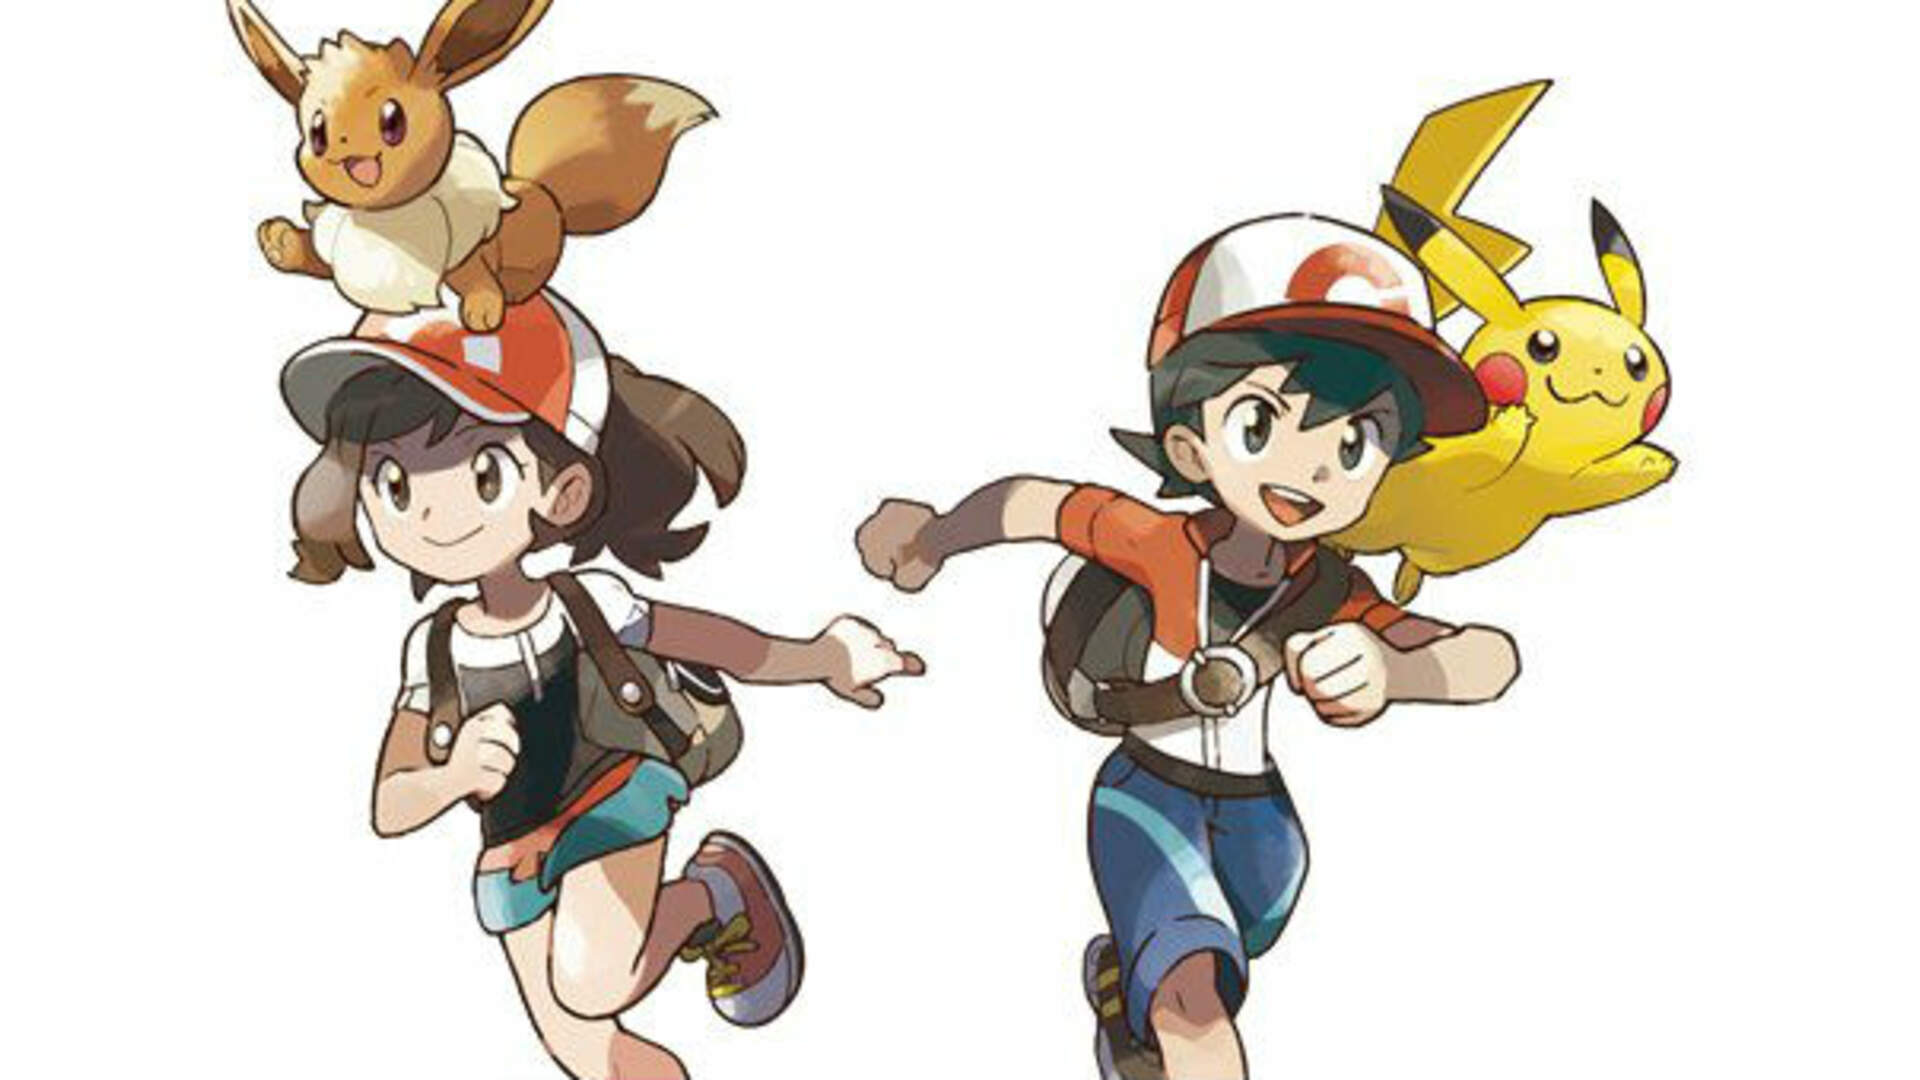 Pokemon Let's Go Will Have Link Trading and Battling, Will Require Active Nintendo Switch Online Membership